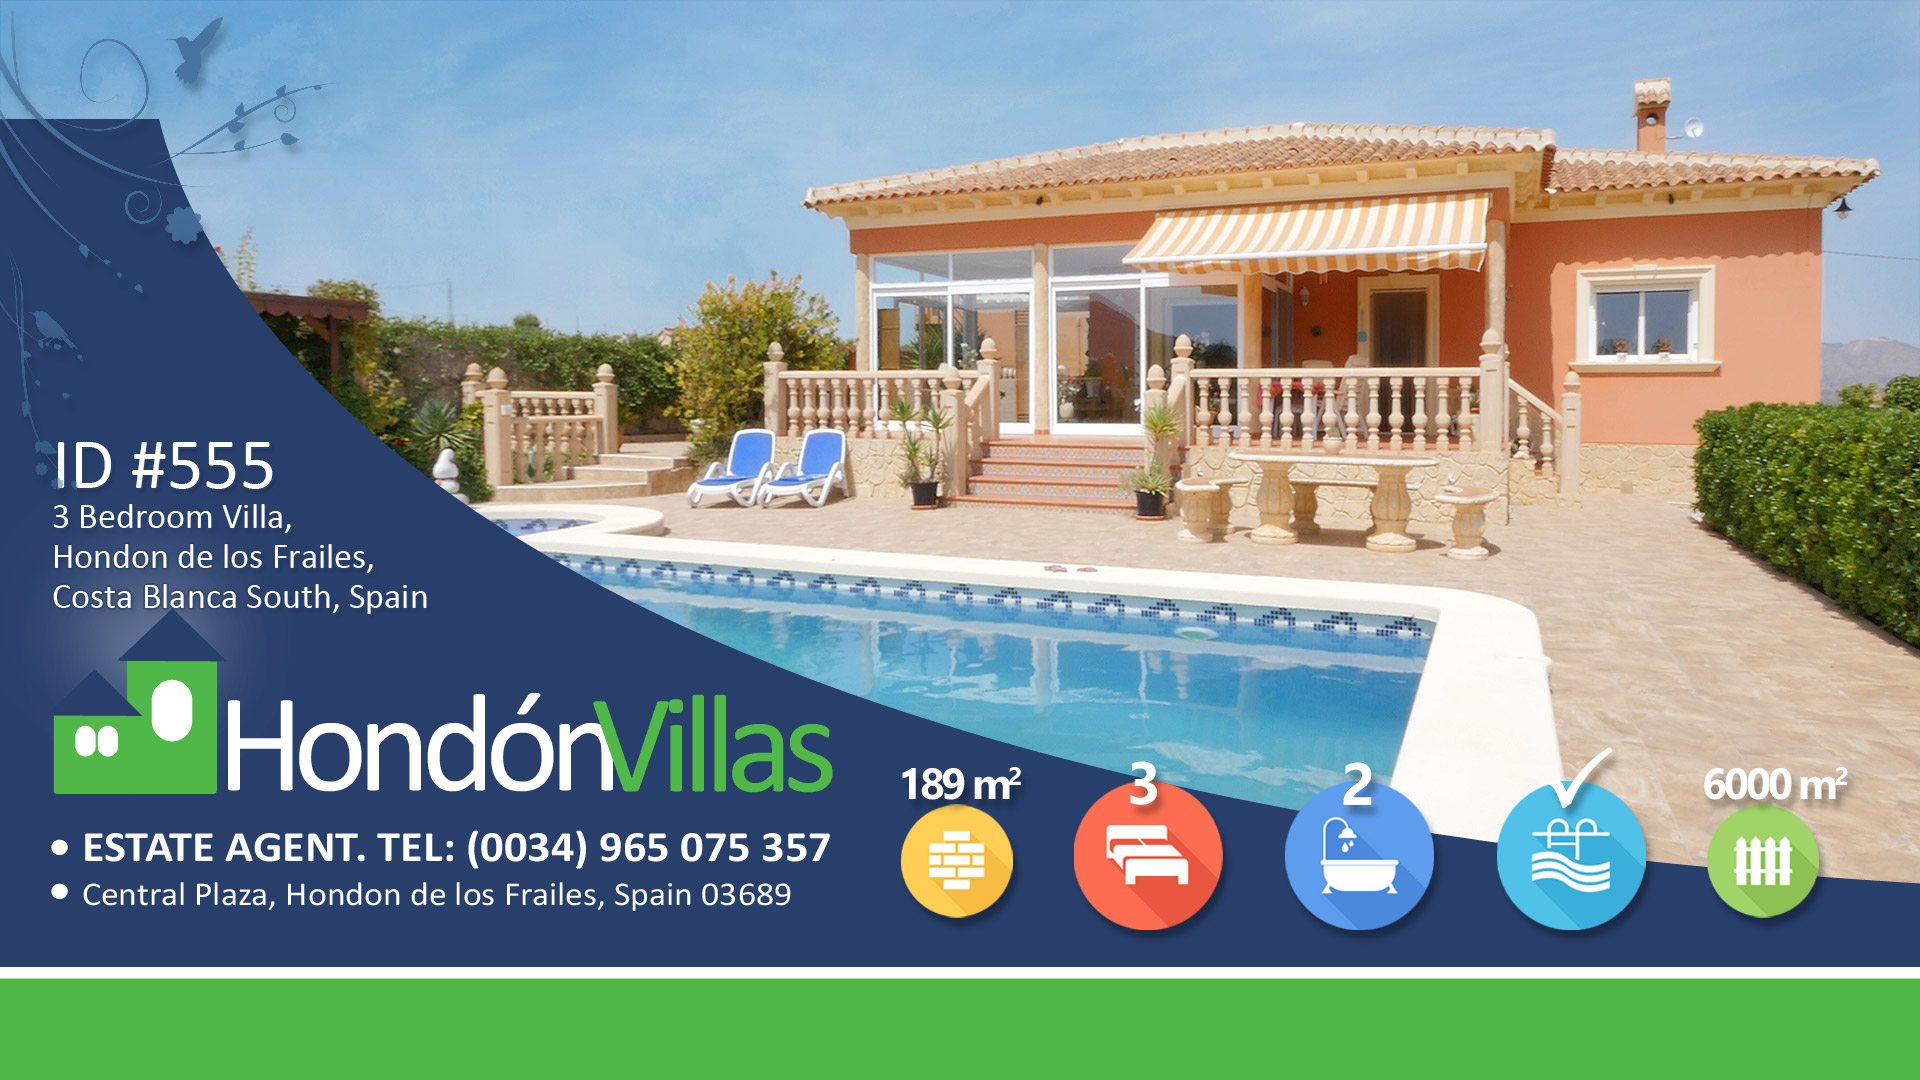 Hondon Villas, Spanish Estate Agent Sells property in Frailes, Hondon Valley